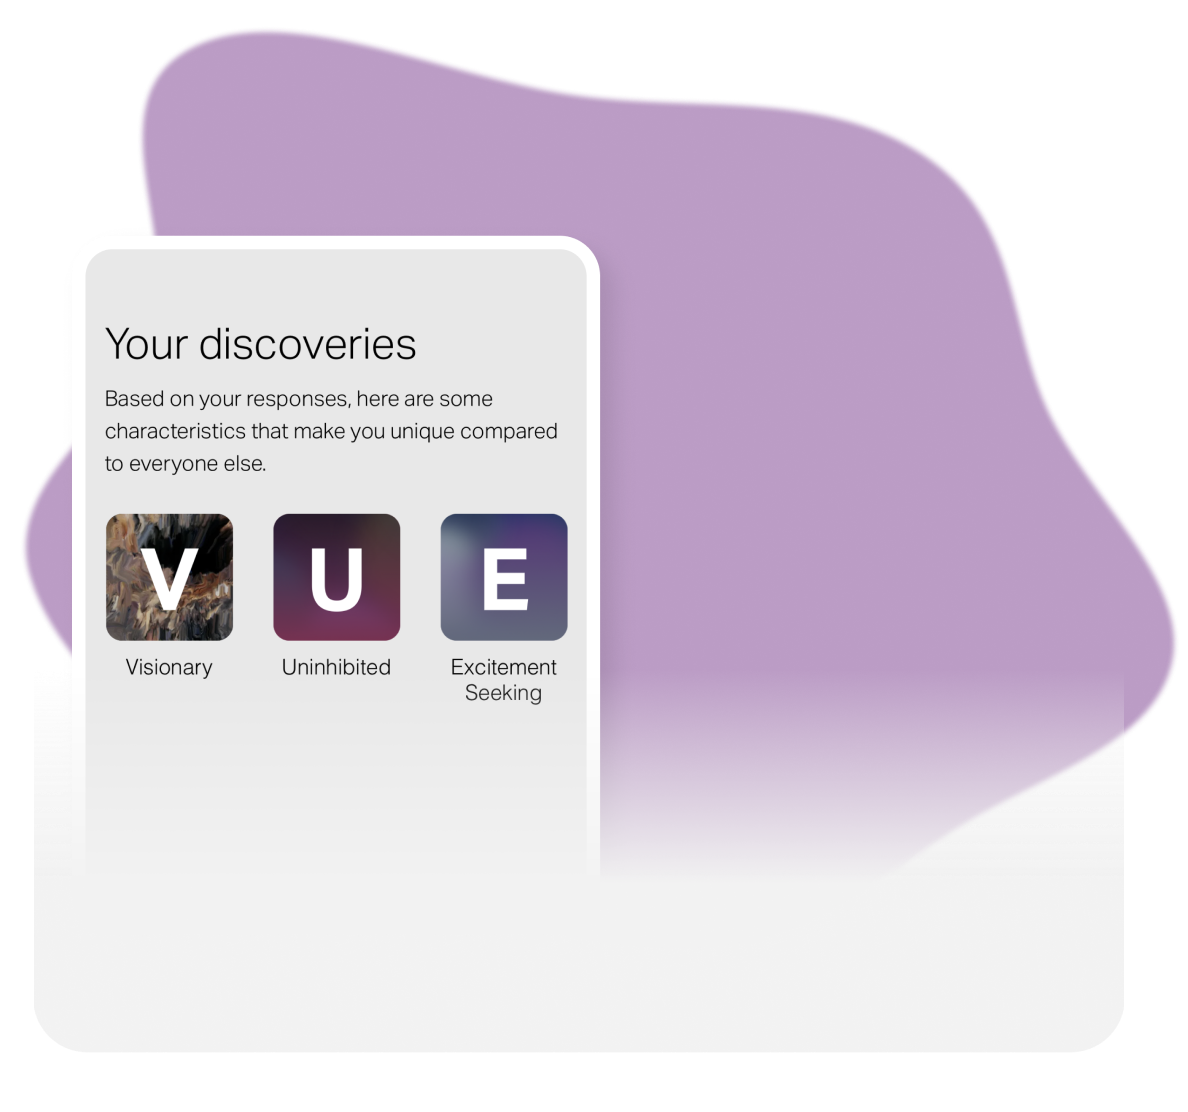 Your discoveries